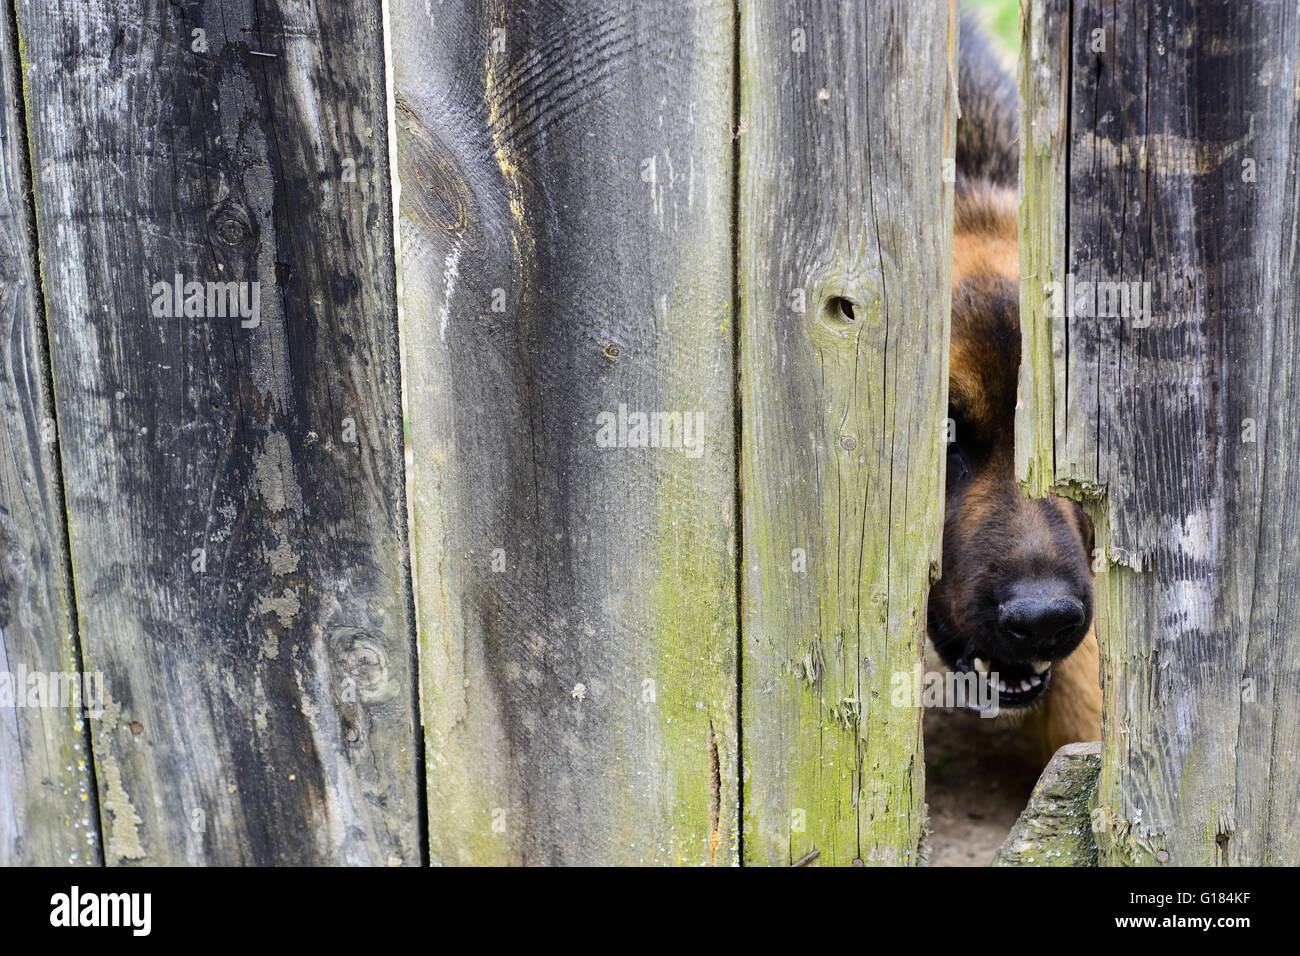 Nose of angry dog protruding through a hole in an old wooden fence - Stock Image